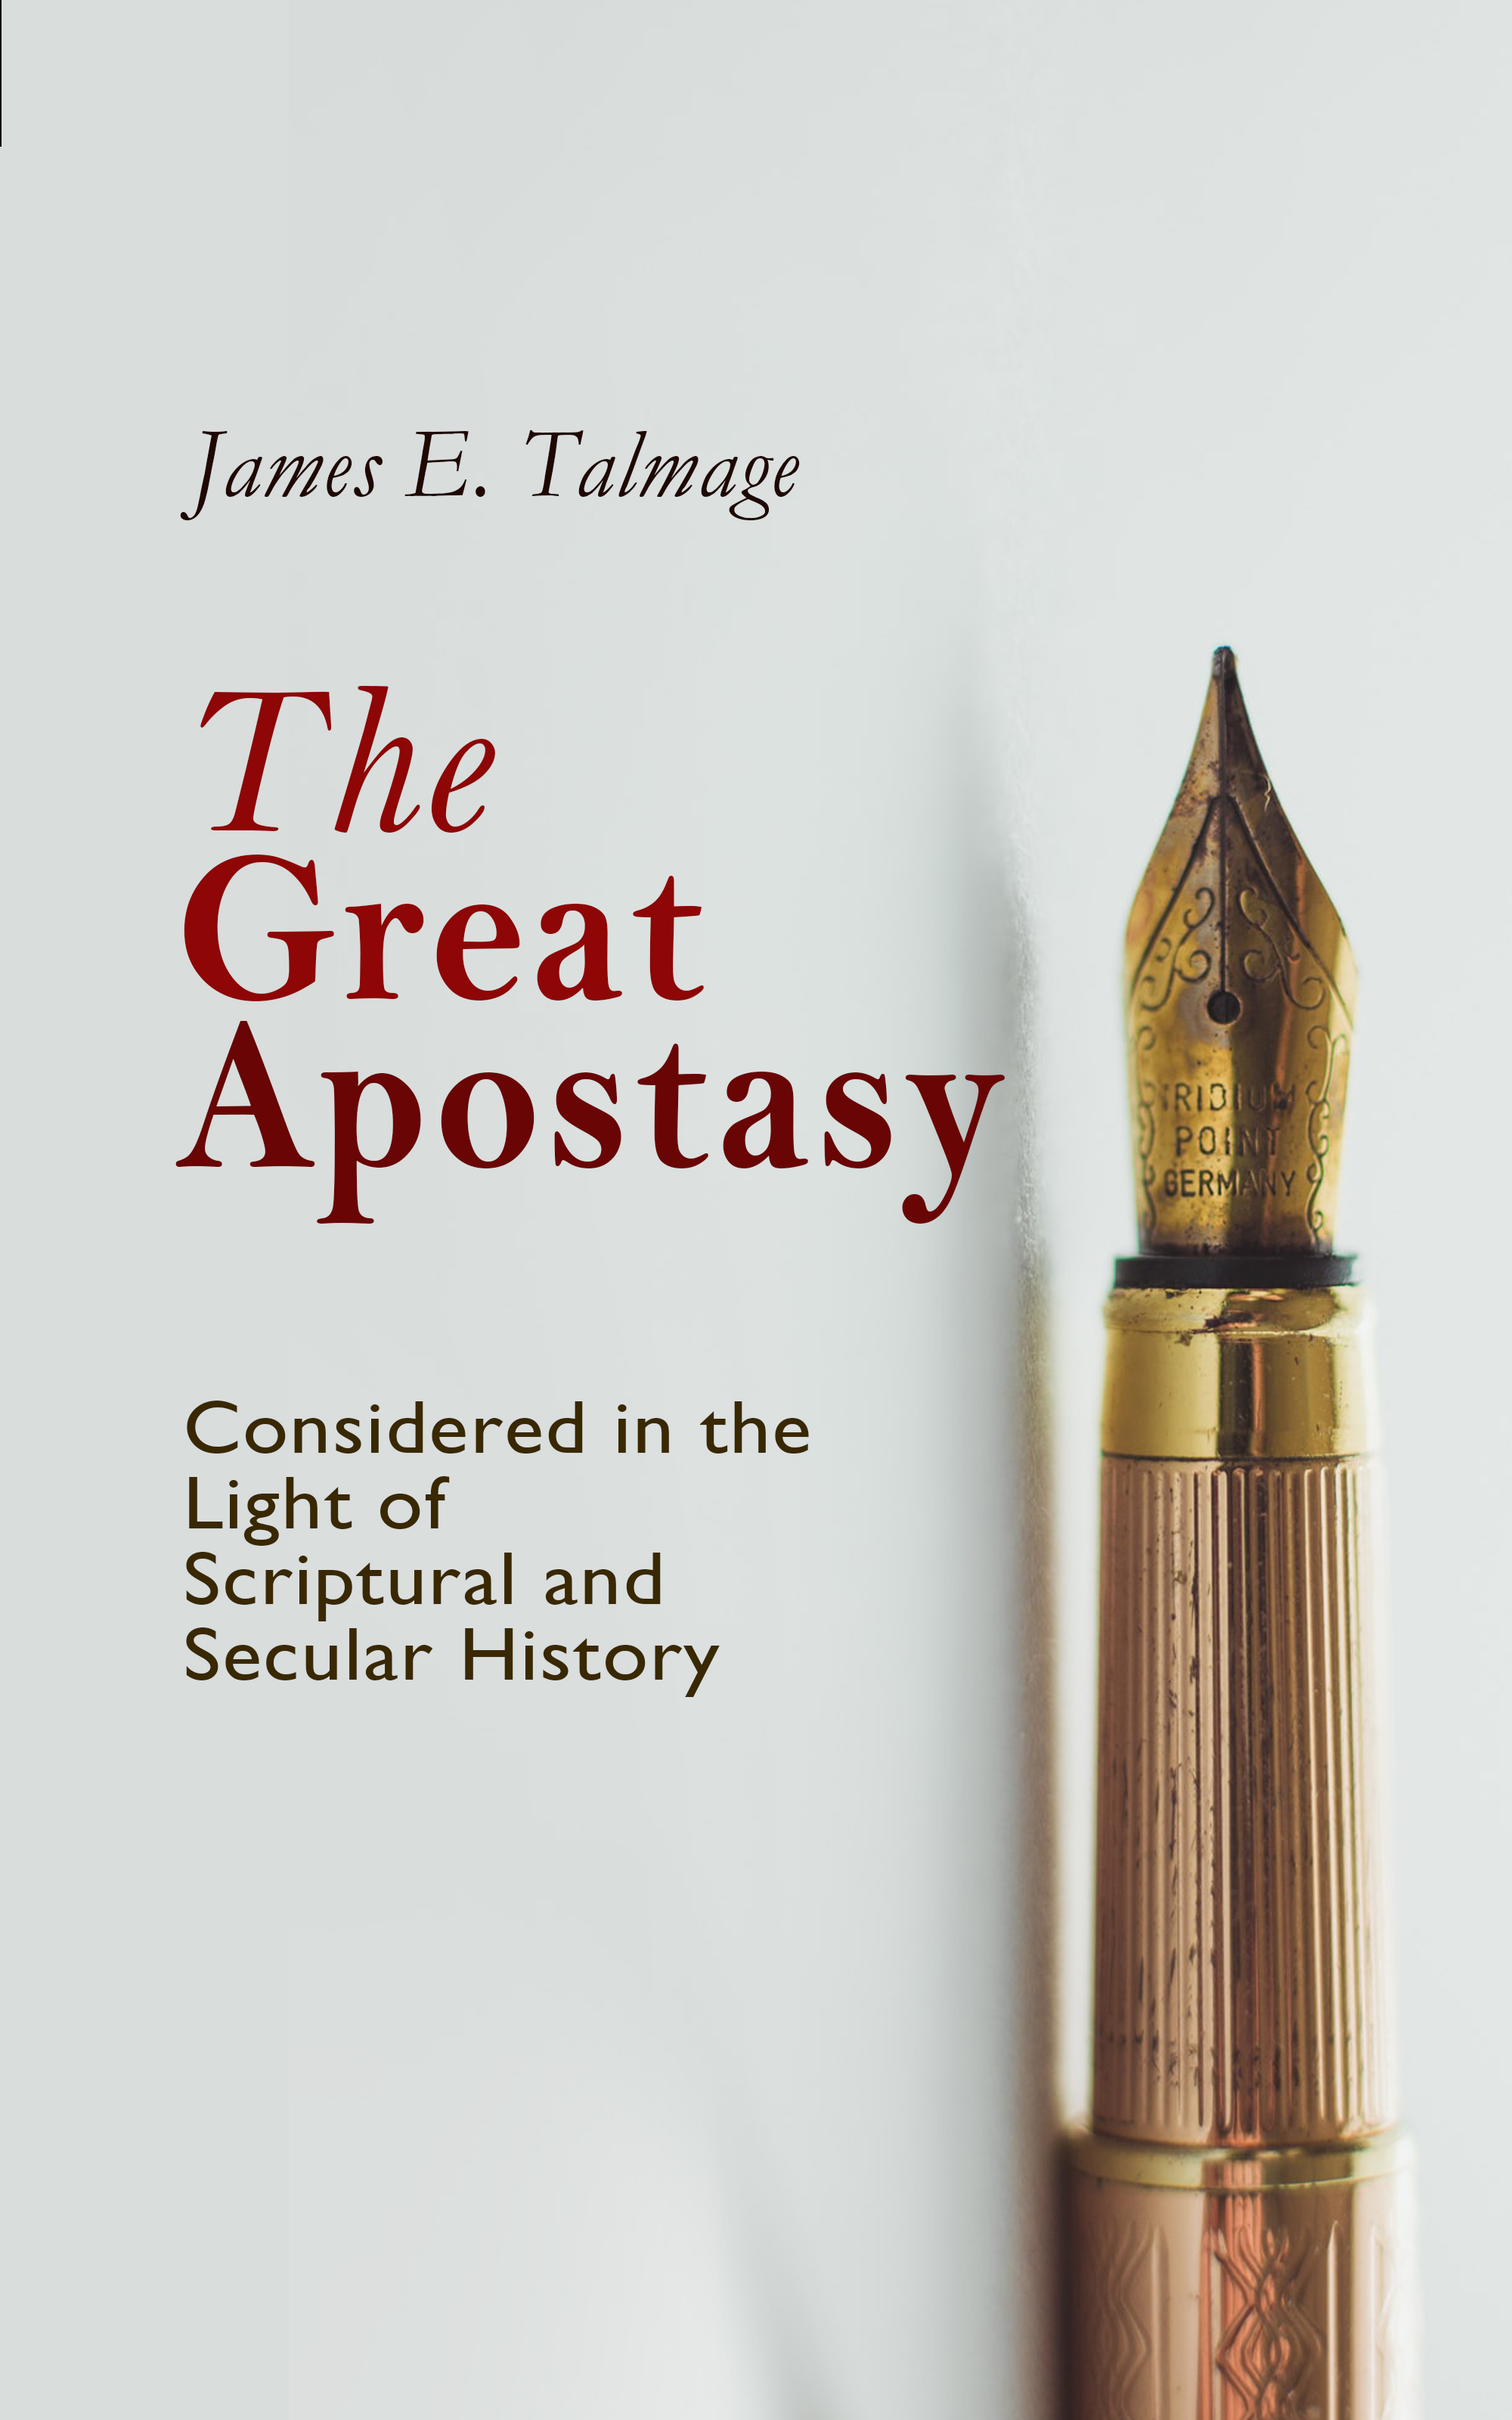 James E. Talmage The Great Apostasy, Considered in the Light of Scriptural and Secular History causes of petty offences